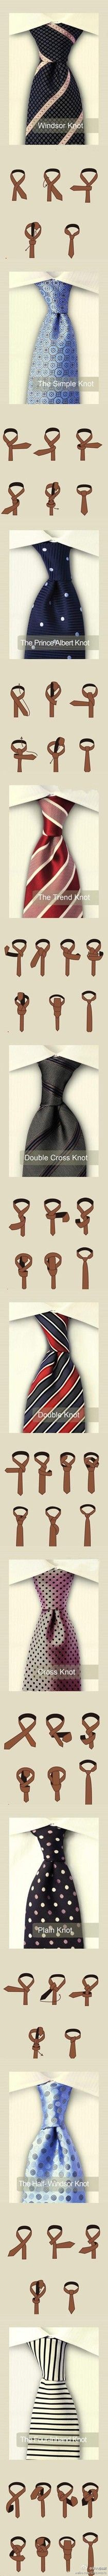 Different ways to tie a tie